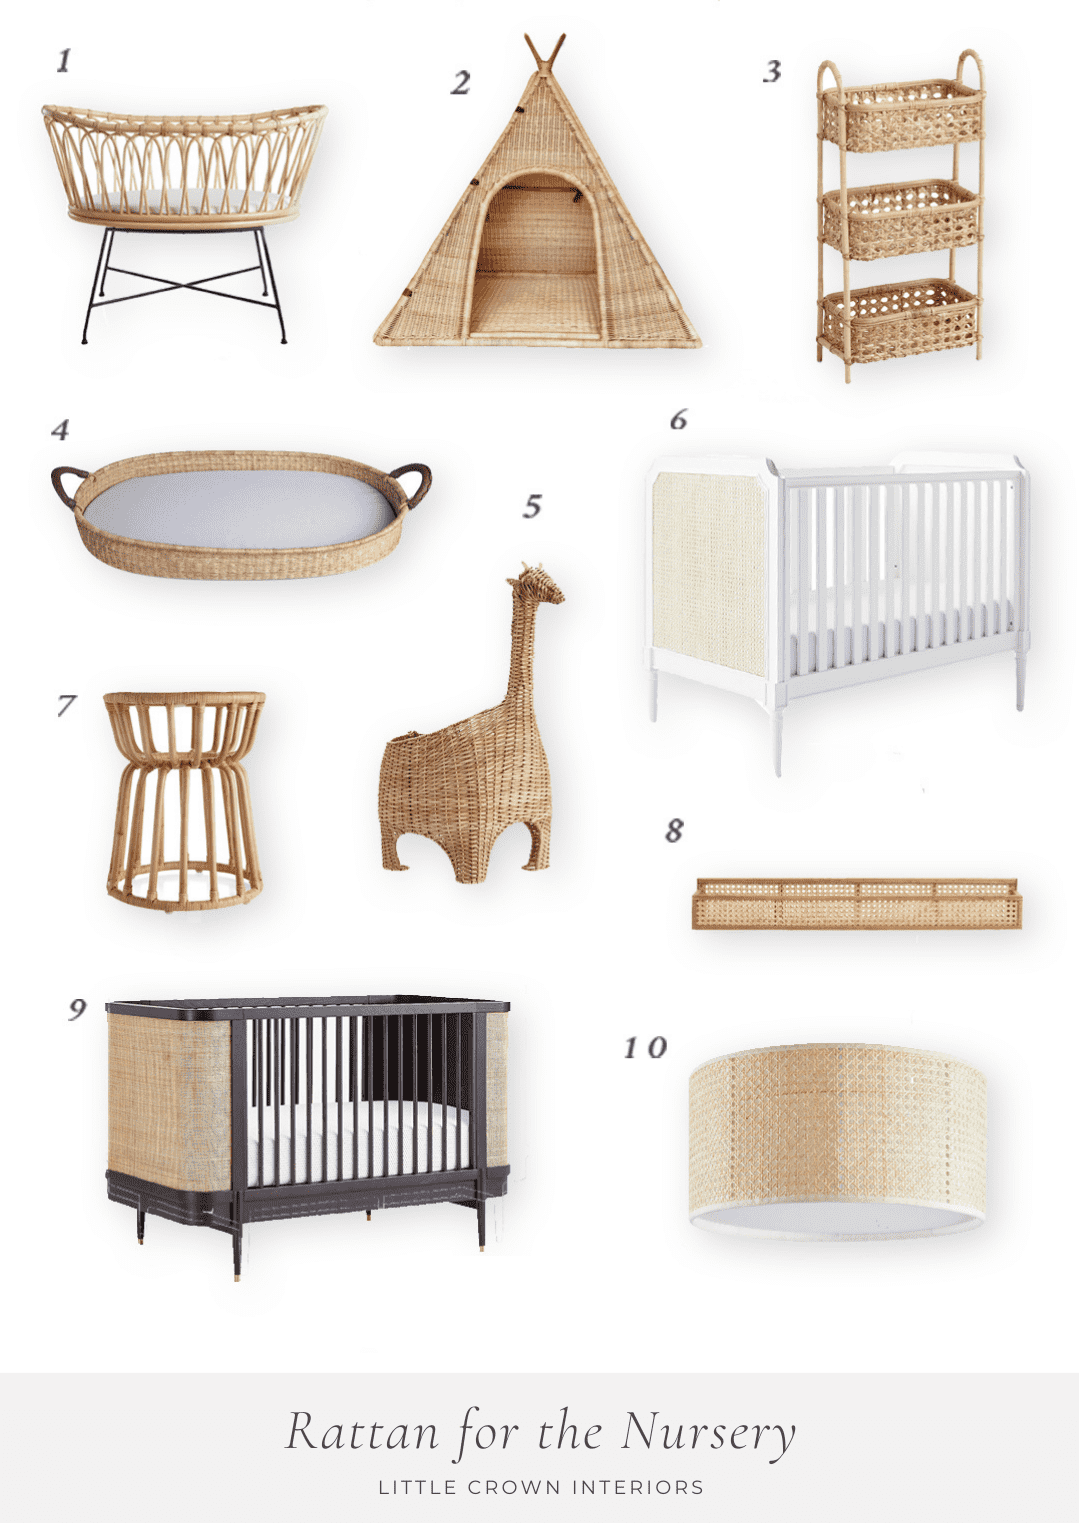 My favorite Ratten, Wicker, and Caning for the Nursery